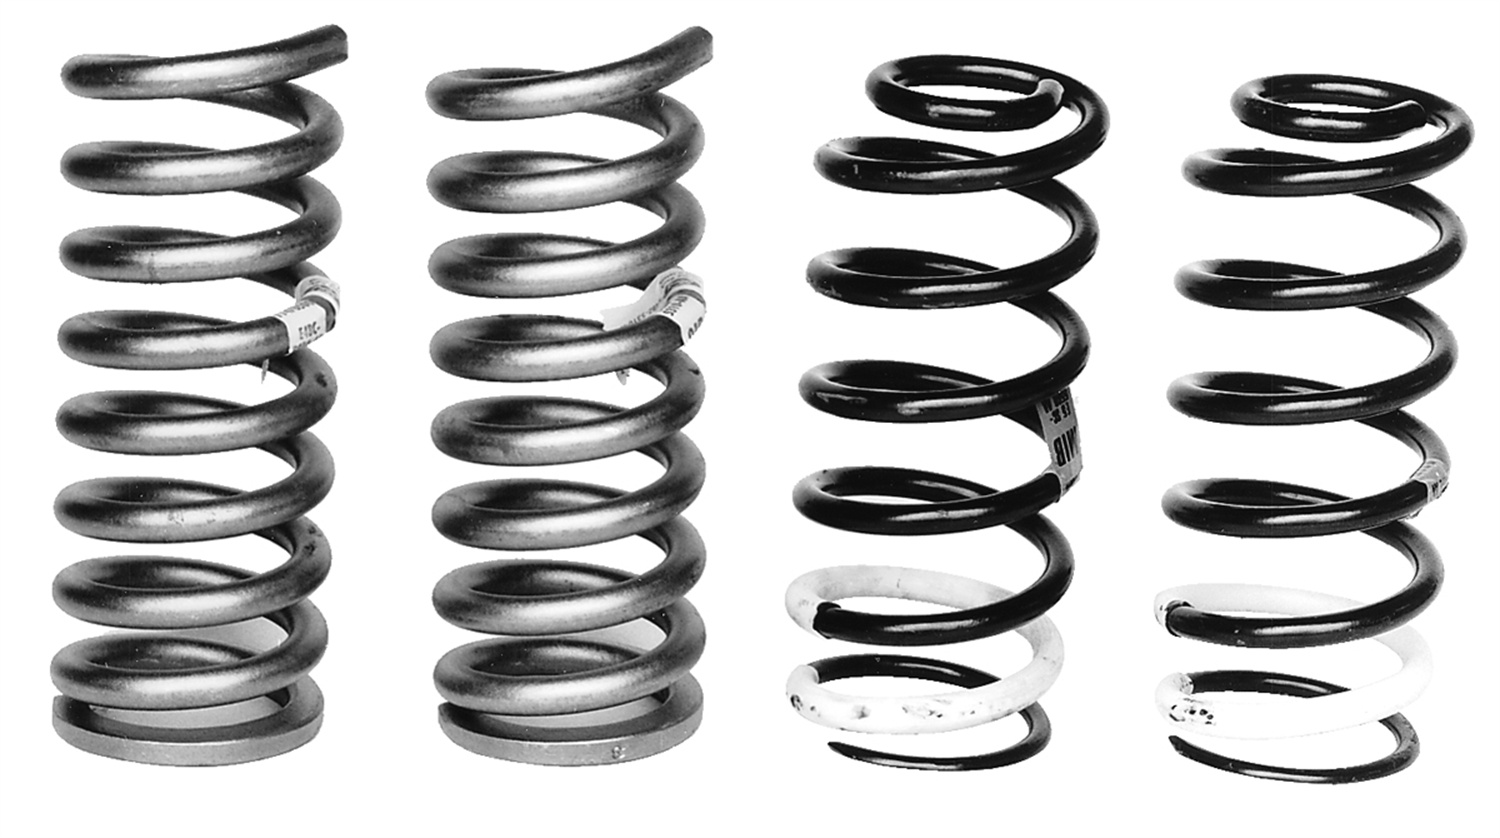 Ford Performance Parts M-5300-C Spring Kit Fits 79-04